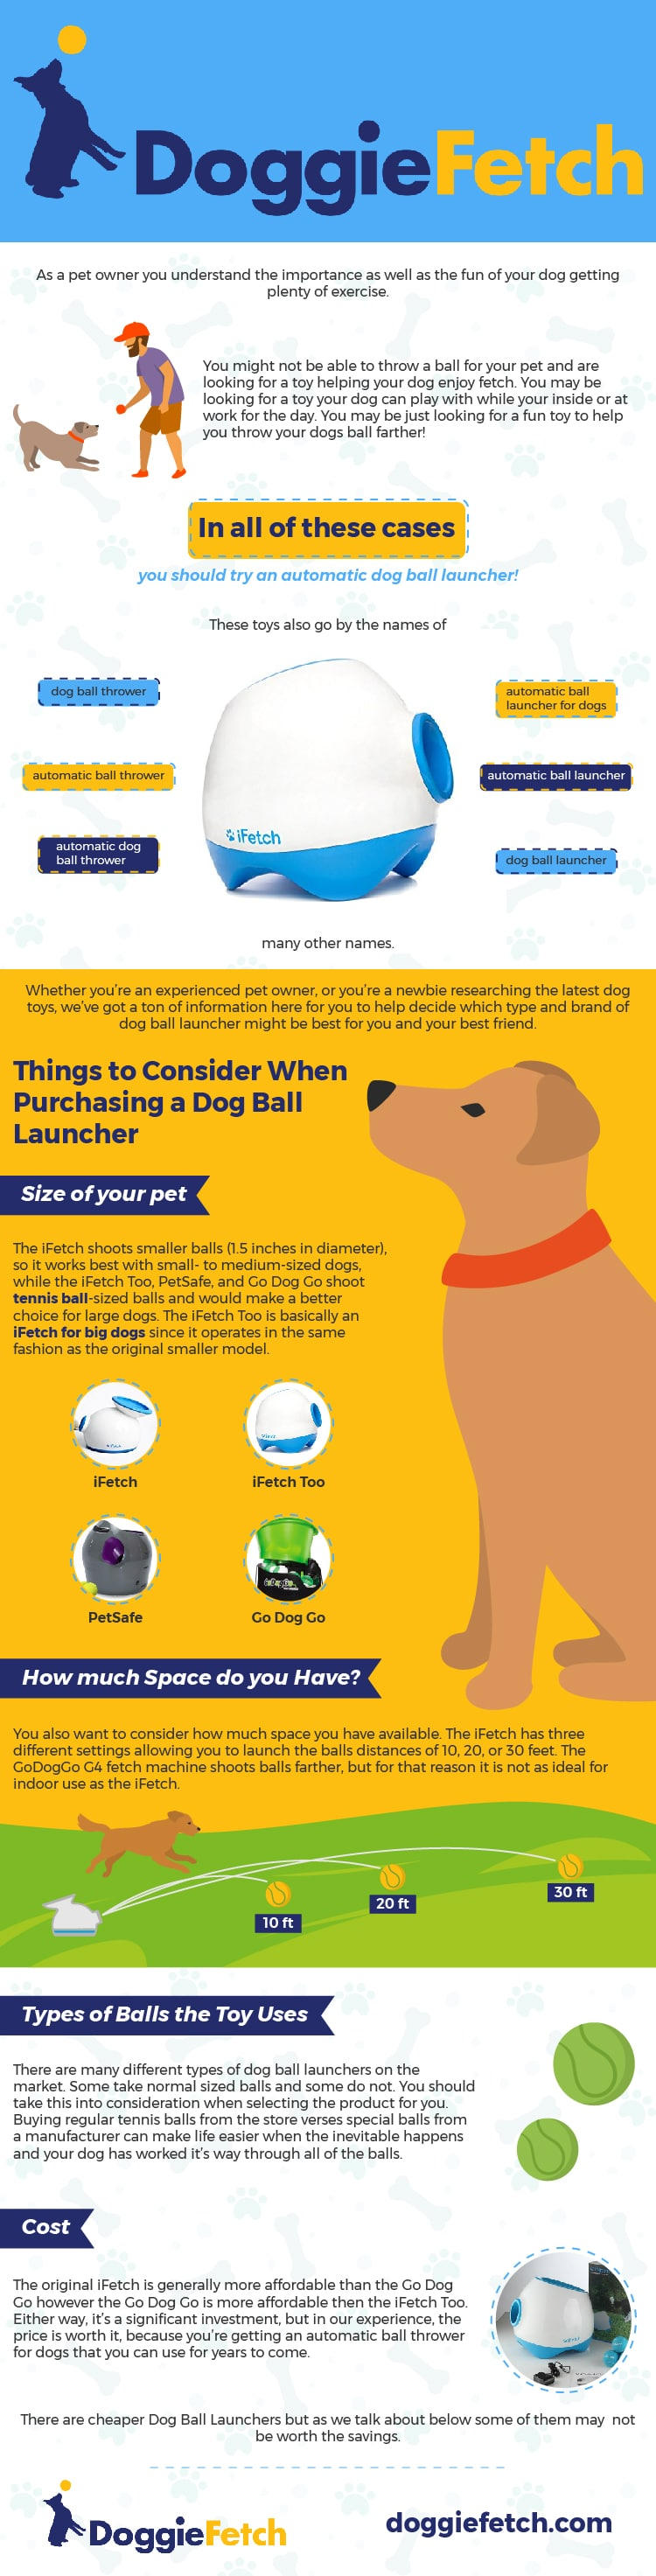 DoggyFetch Dog Ball Launcher Infographic